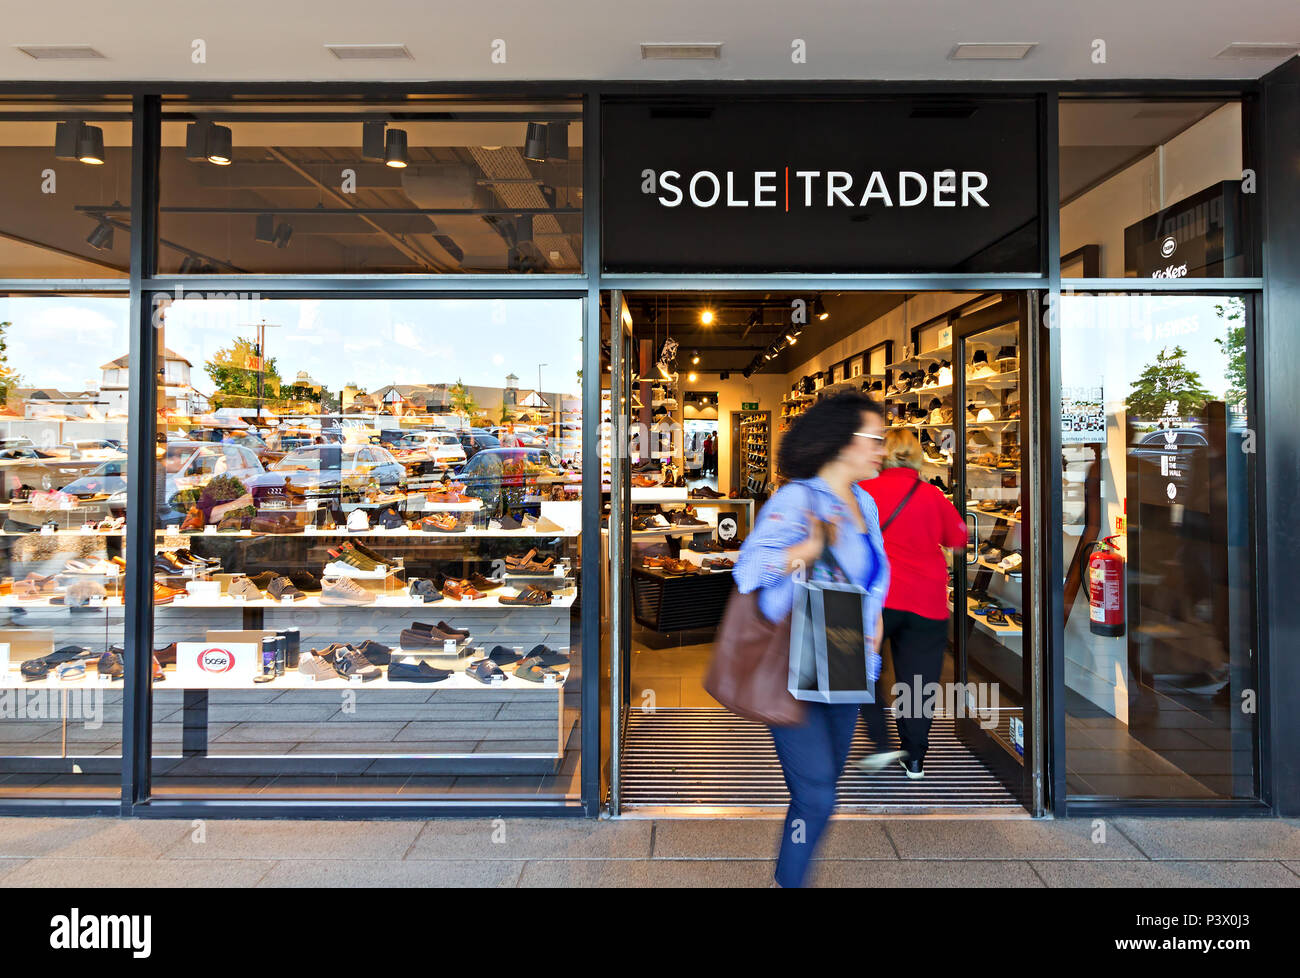 Shop frontage of the Sole Trader store at the Cheshire Oaks Designer Outlet, Ellesmere Port Cheshire. - Stock Image